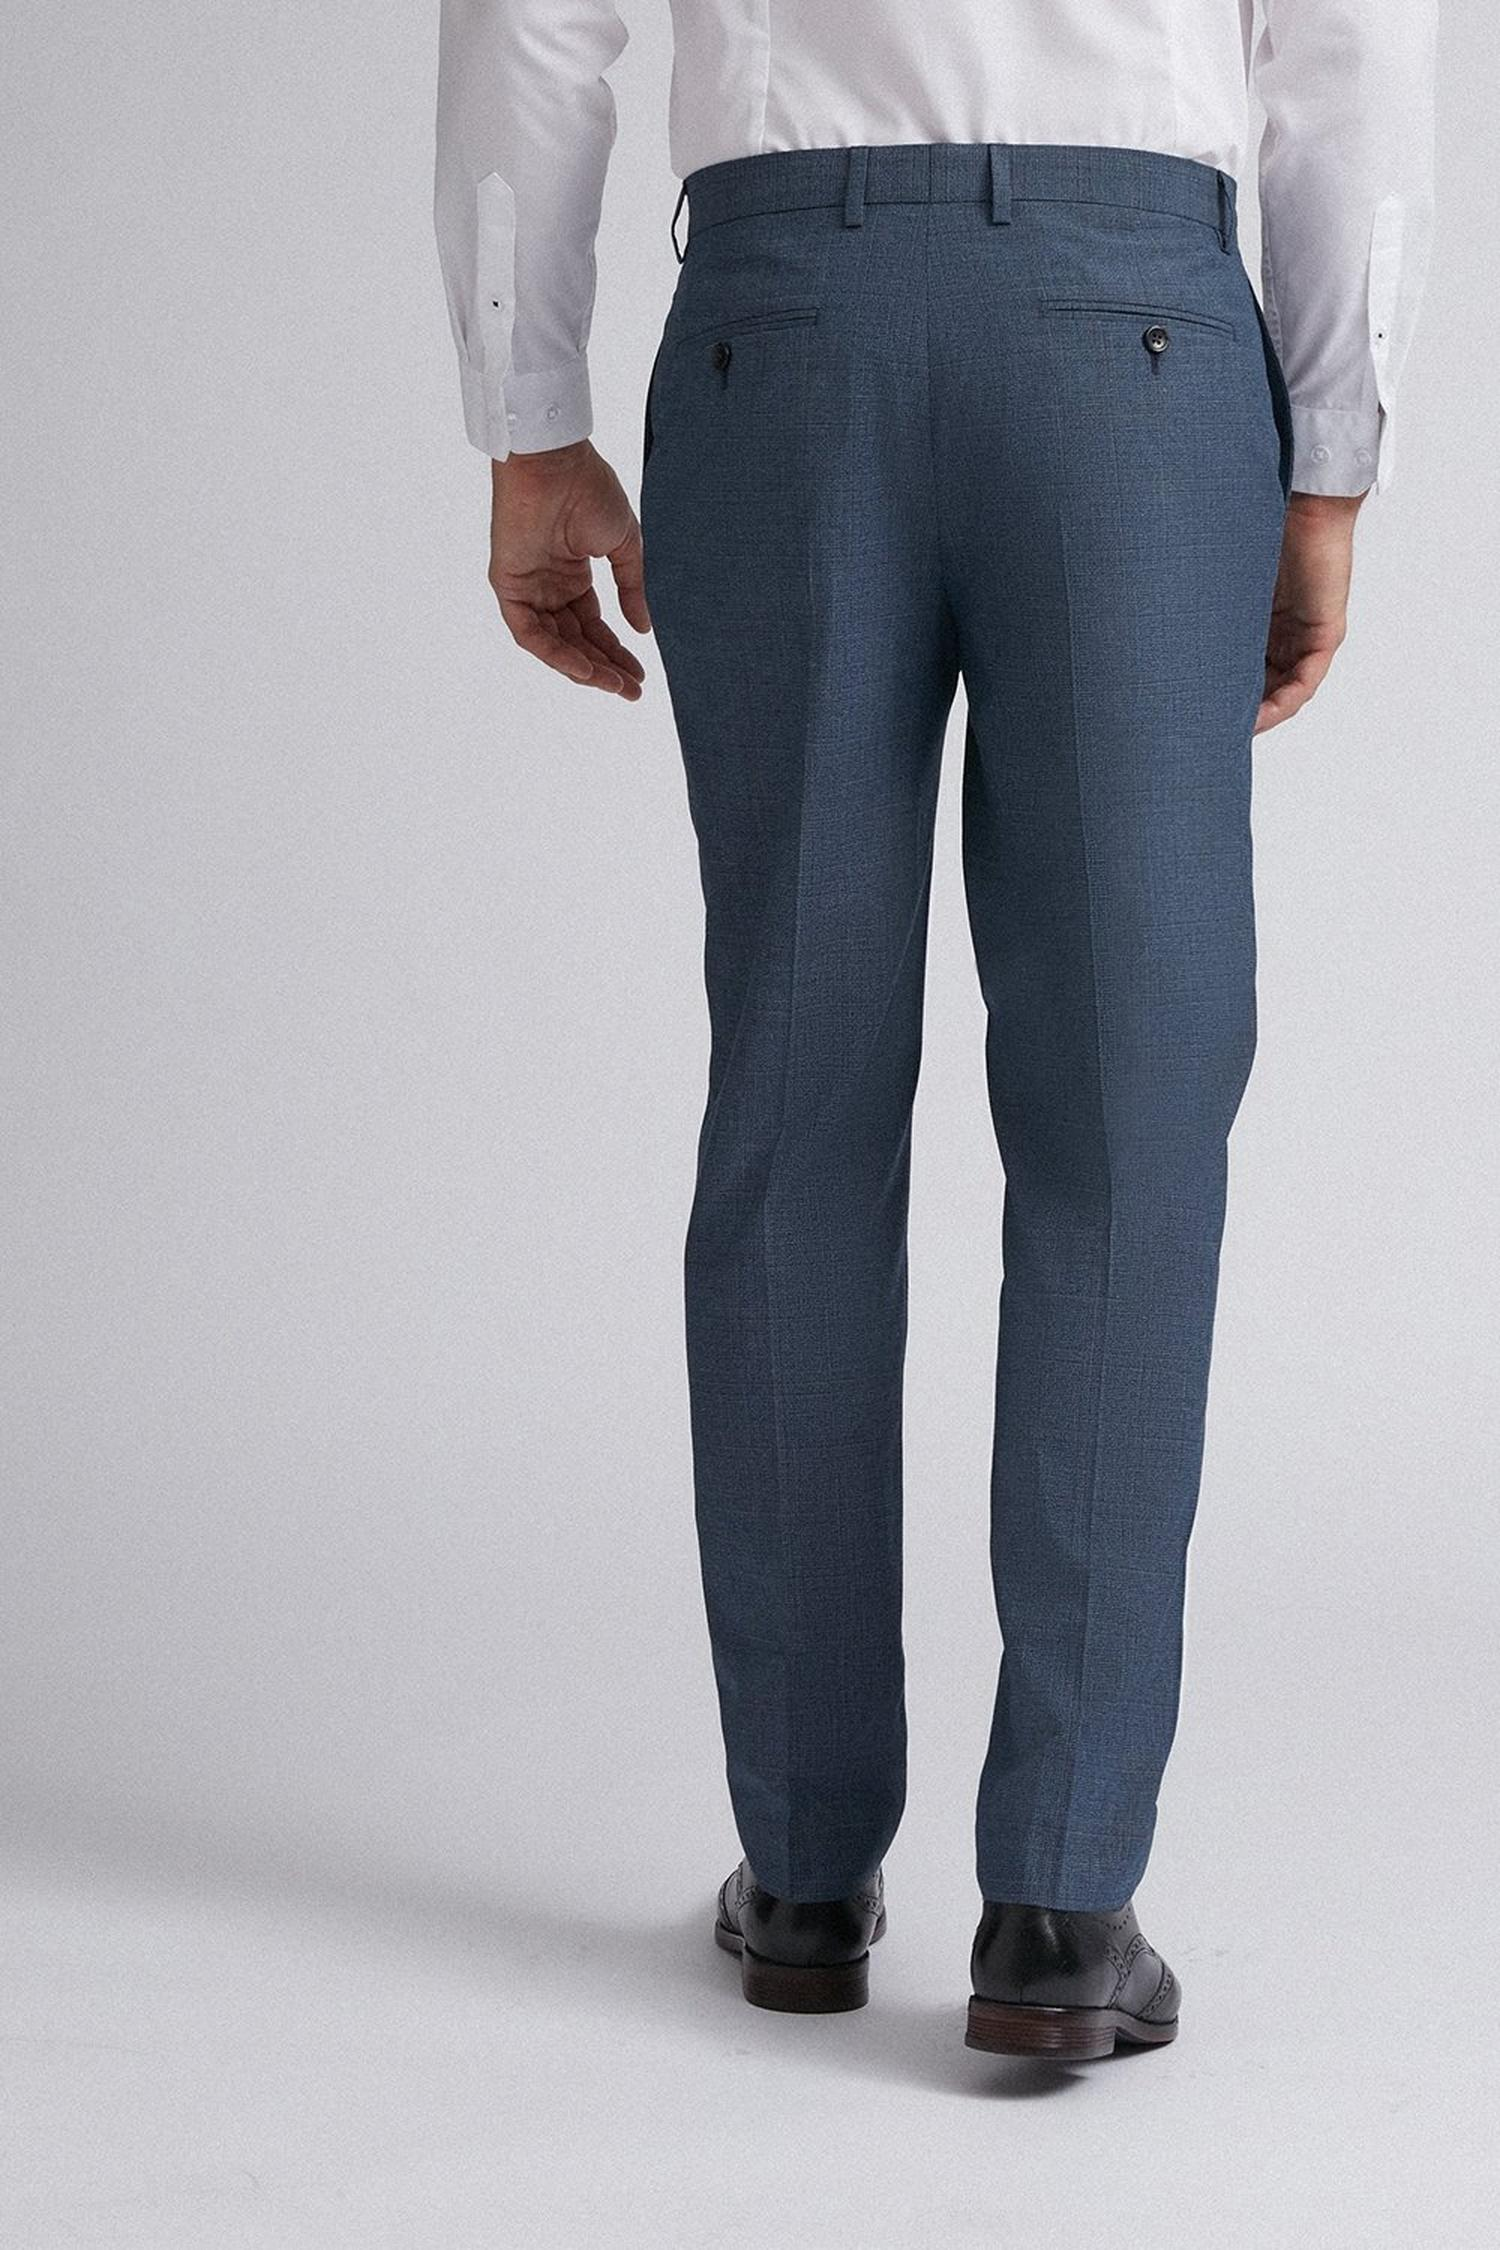 106 Blue Jaspe Check Slim Fit Suit Trousers image number 3